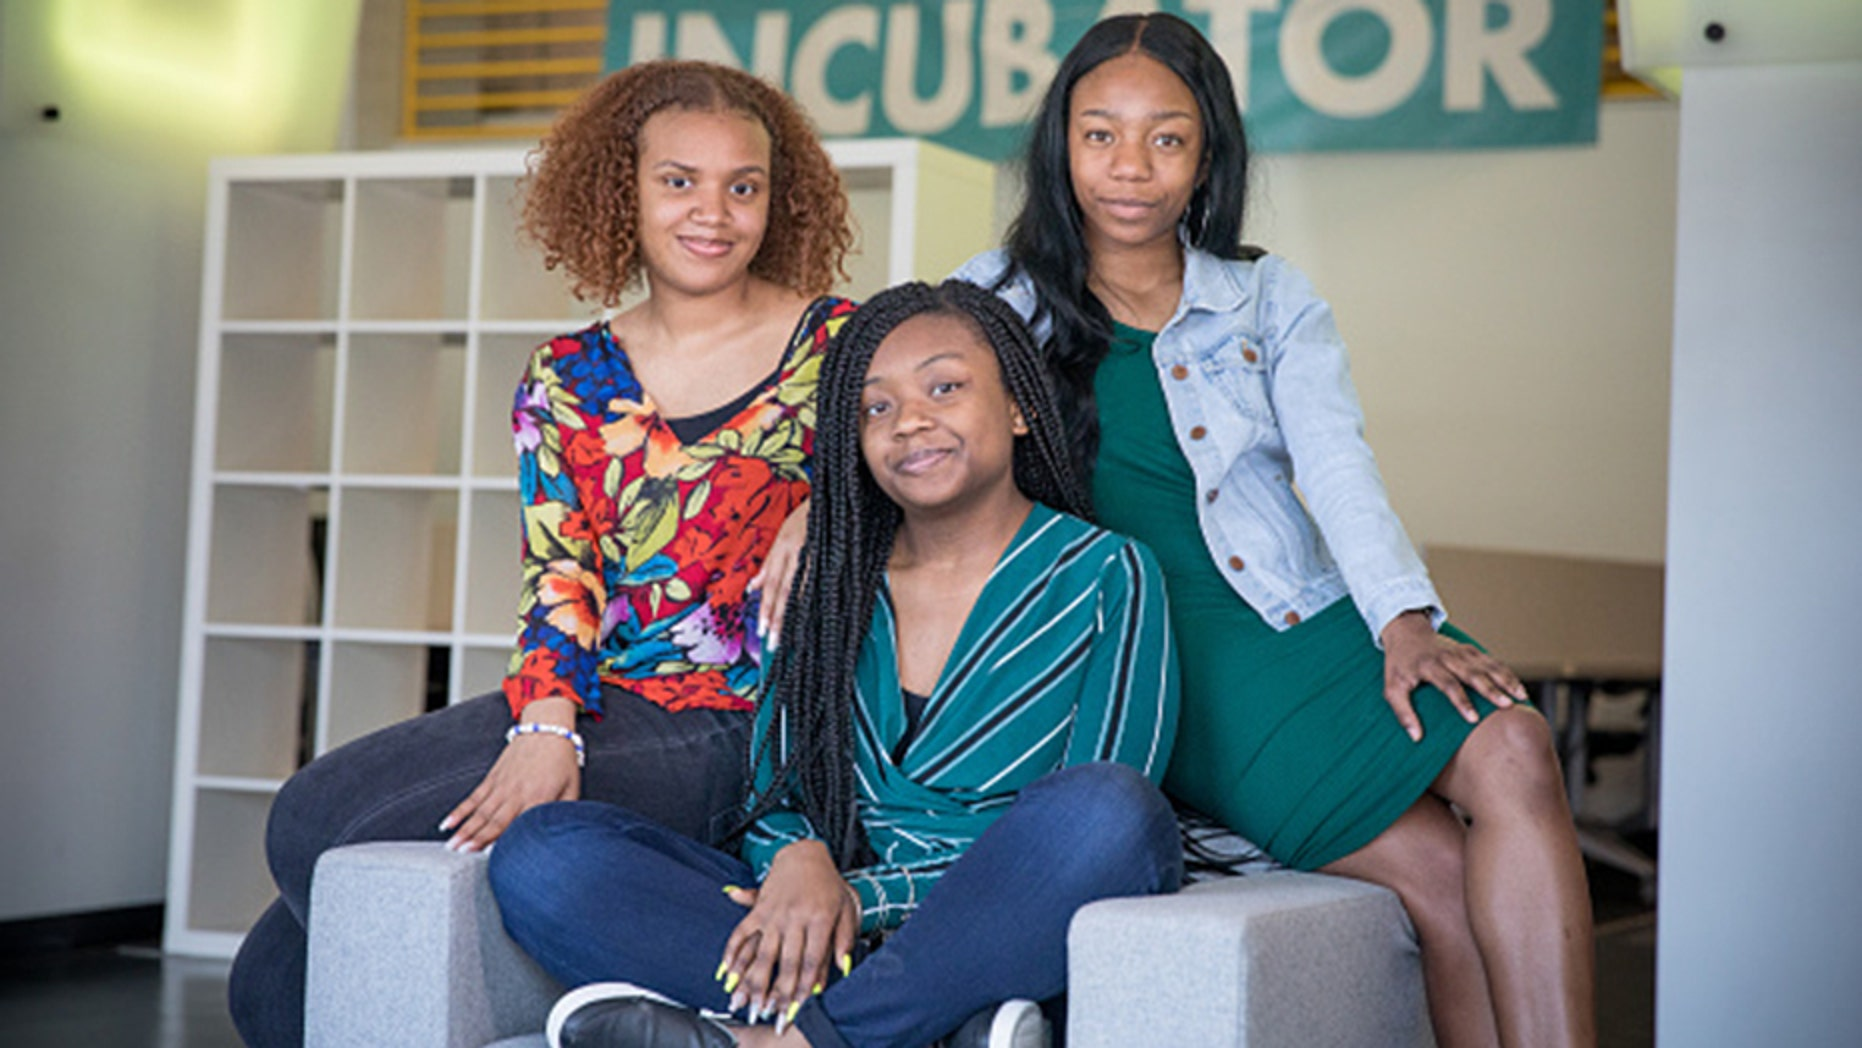 WASHINGTON,DC-MAY1: (L-R) India Skinner, Mikayla Sharrieff, and Bria Snell, 11th graders from Banneker High School in Washington, DC, are finalists in a NASA youth science competition. They are the only team of all-black students. Their successes have been getting a lot of attention among black figures on social media. (Photo by Evelyn Hockstein/For The Washington Post via Getty Images)